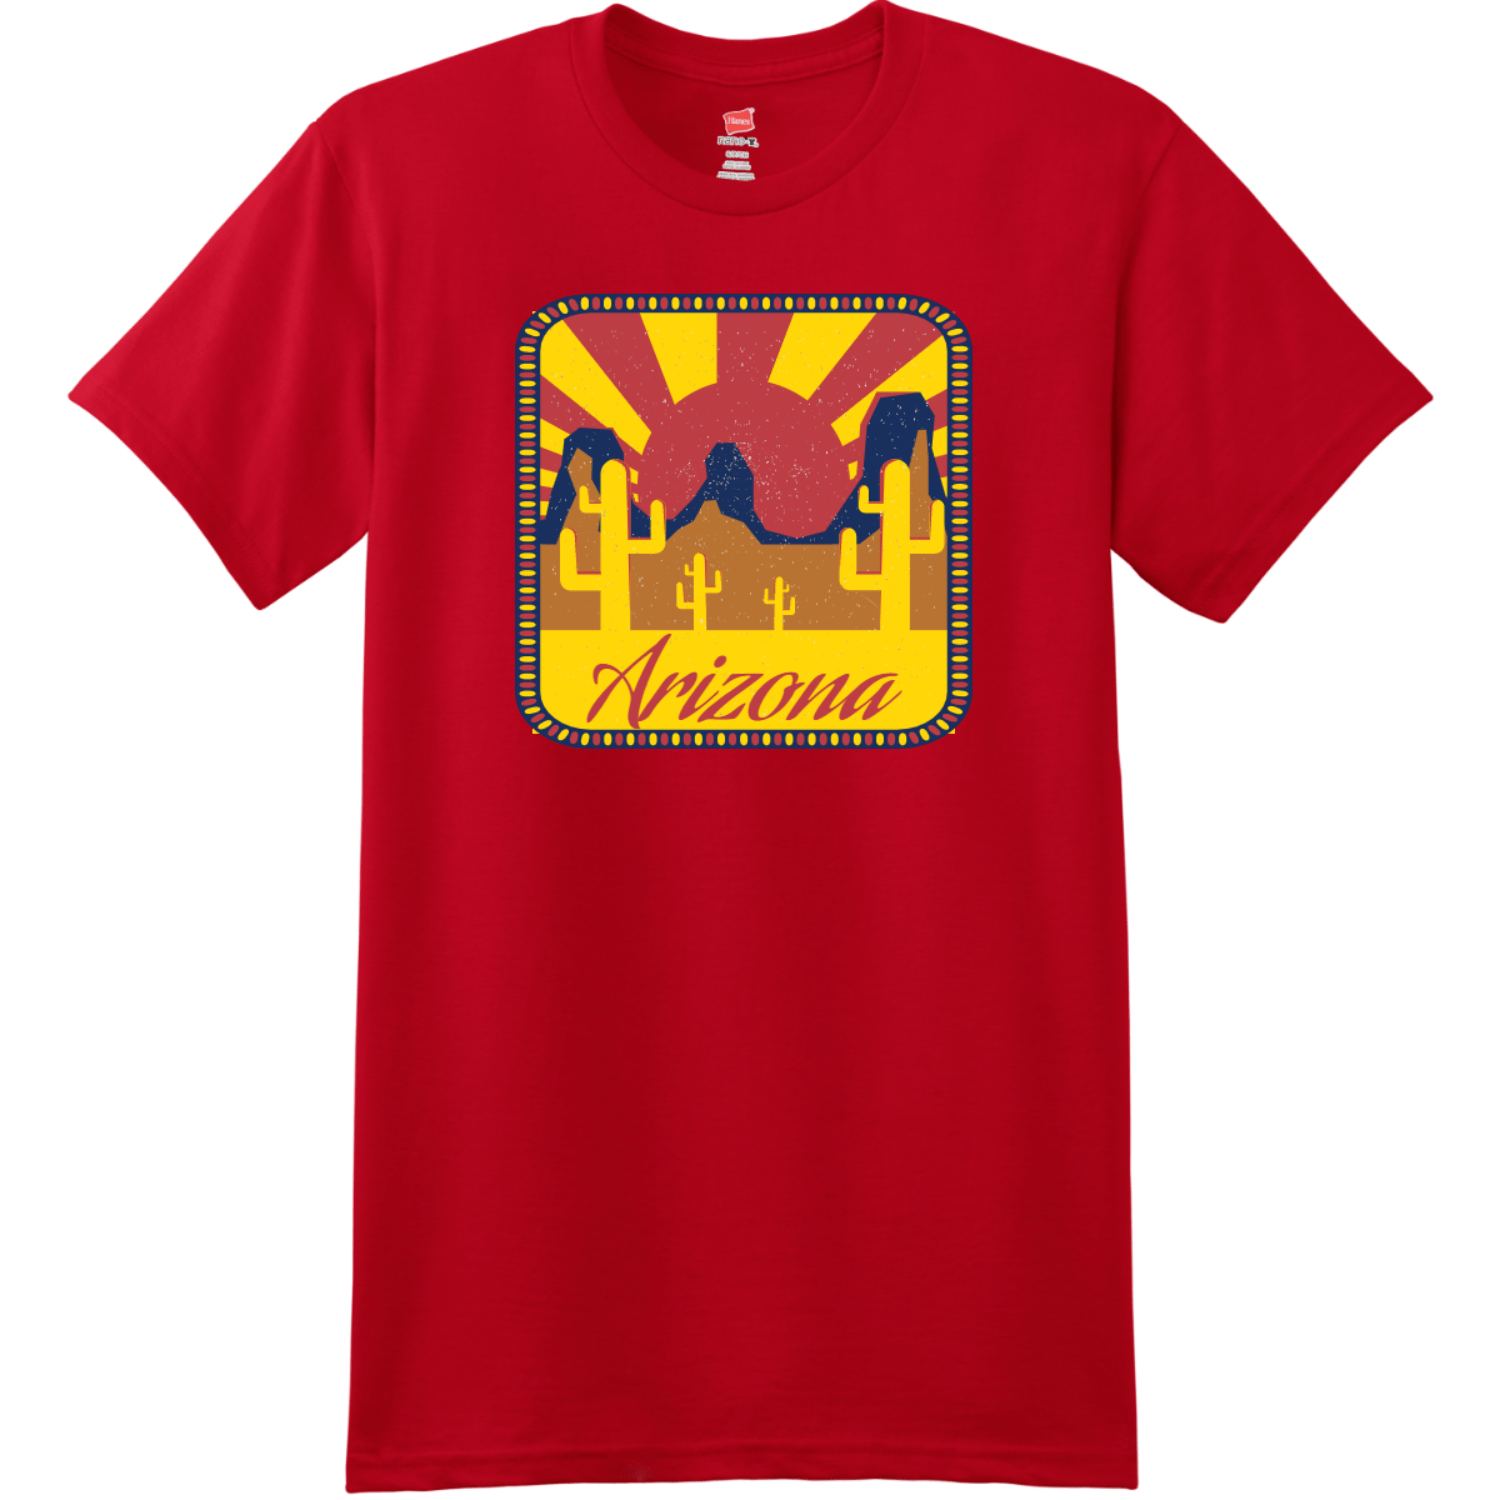 Arizona Desert Sun T-Shirt Deep Red Hanes Nano 4980 Ringspun Cotton T Shirt